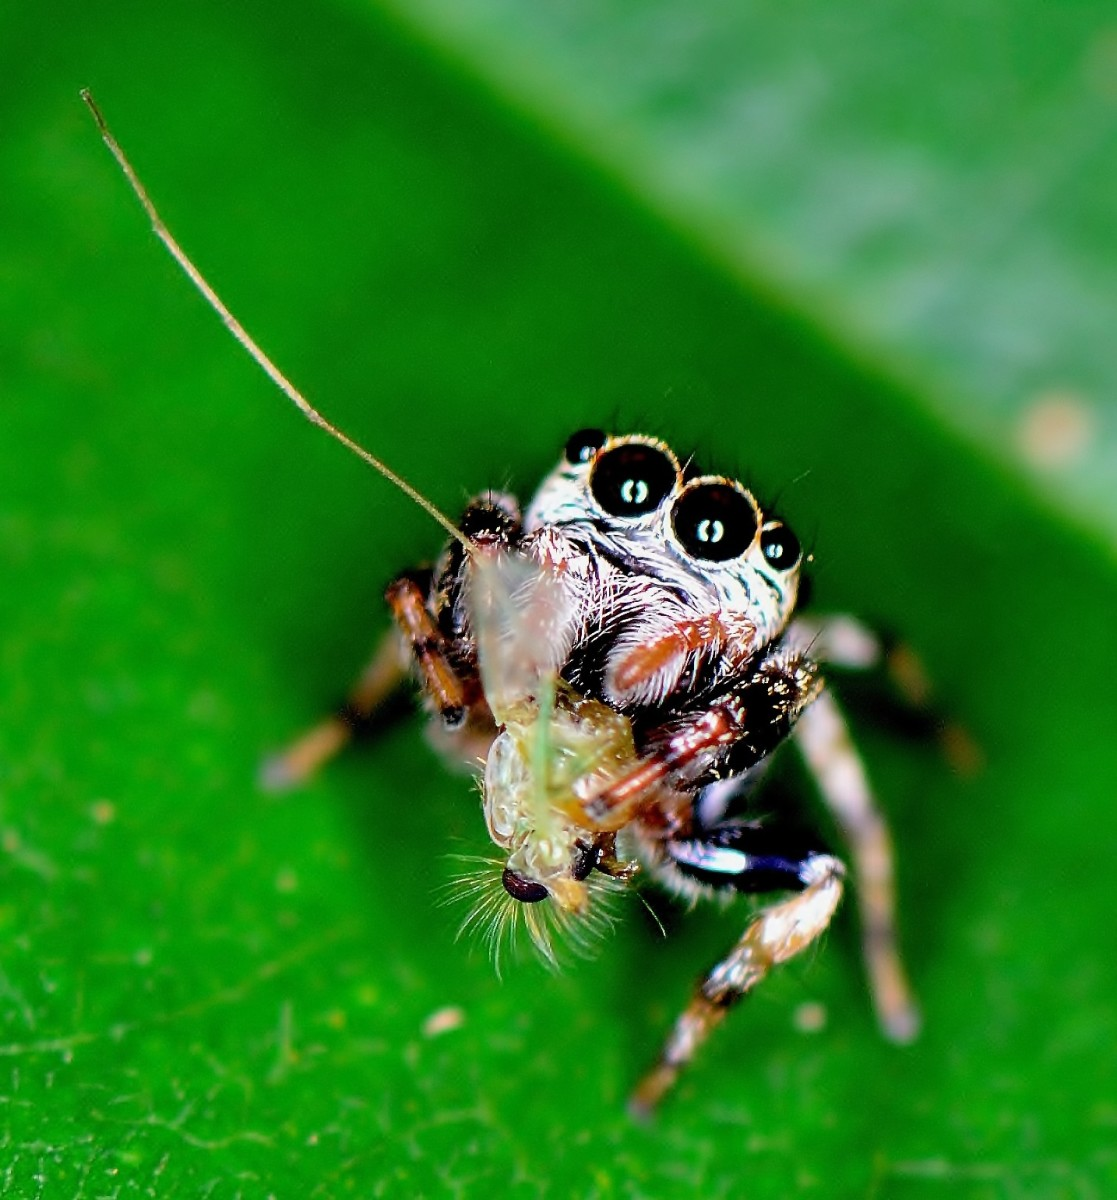 A cute Jumping Spider (Salticidae) found hugging its catch.